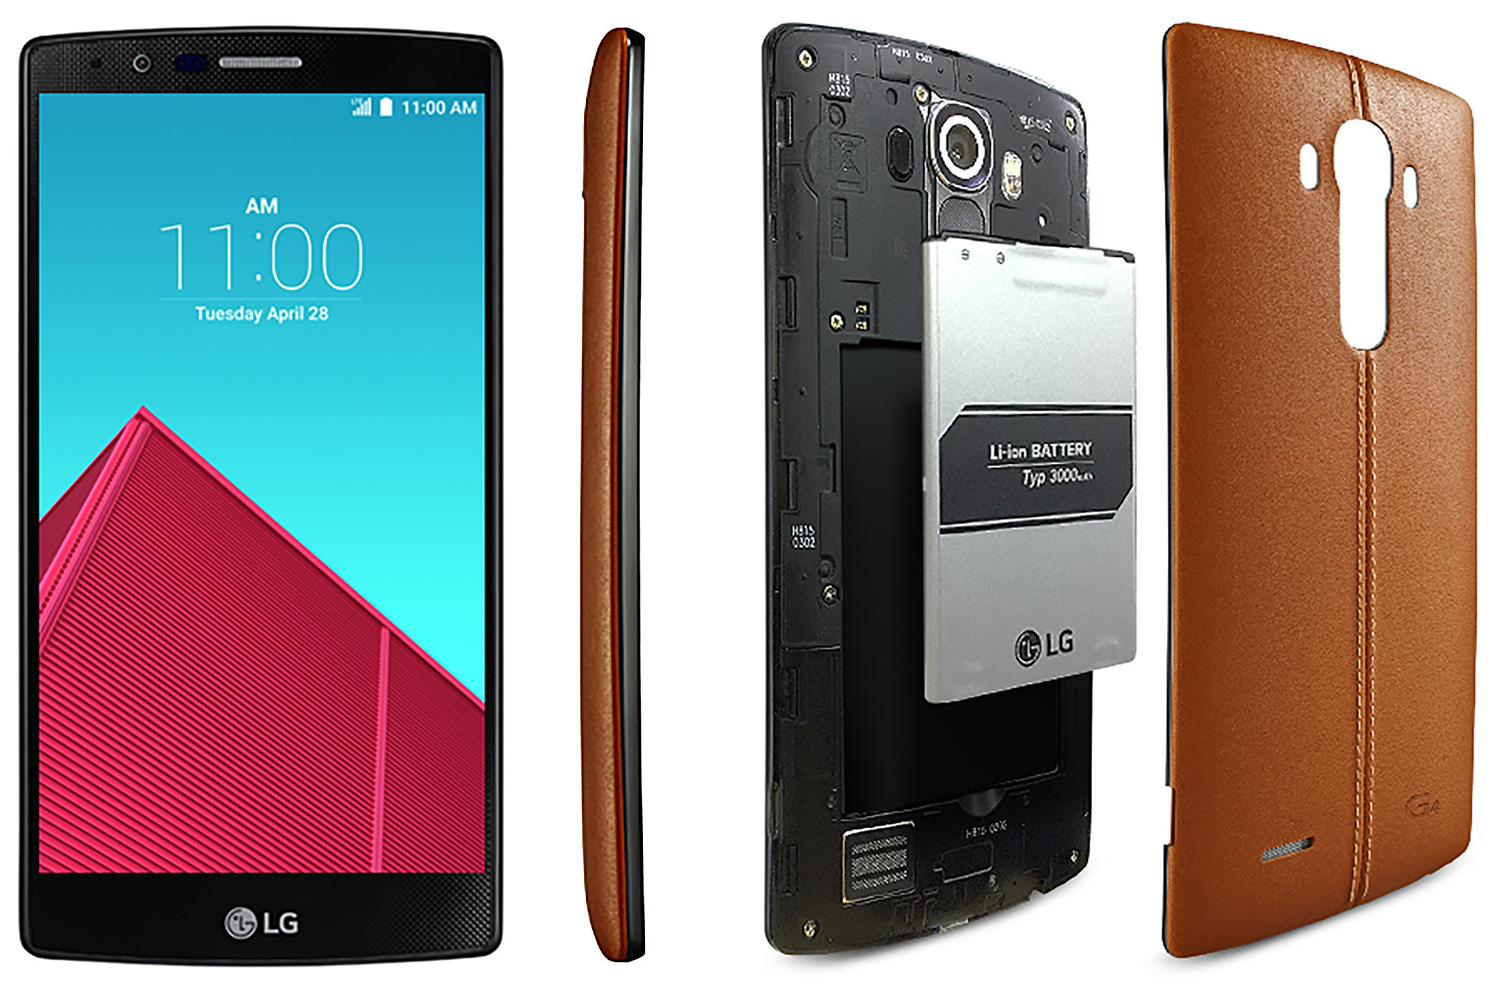 LG G4 Review - A Stylish Device with a Powerful Specification